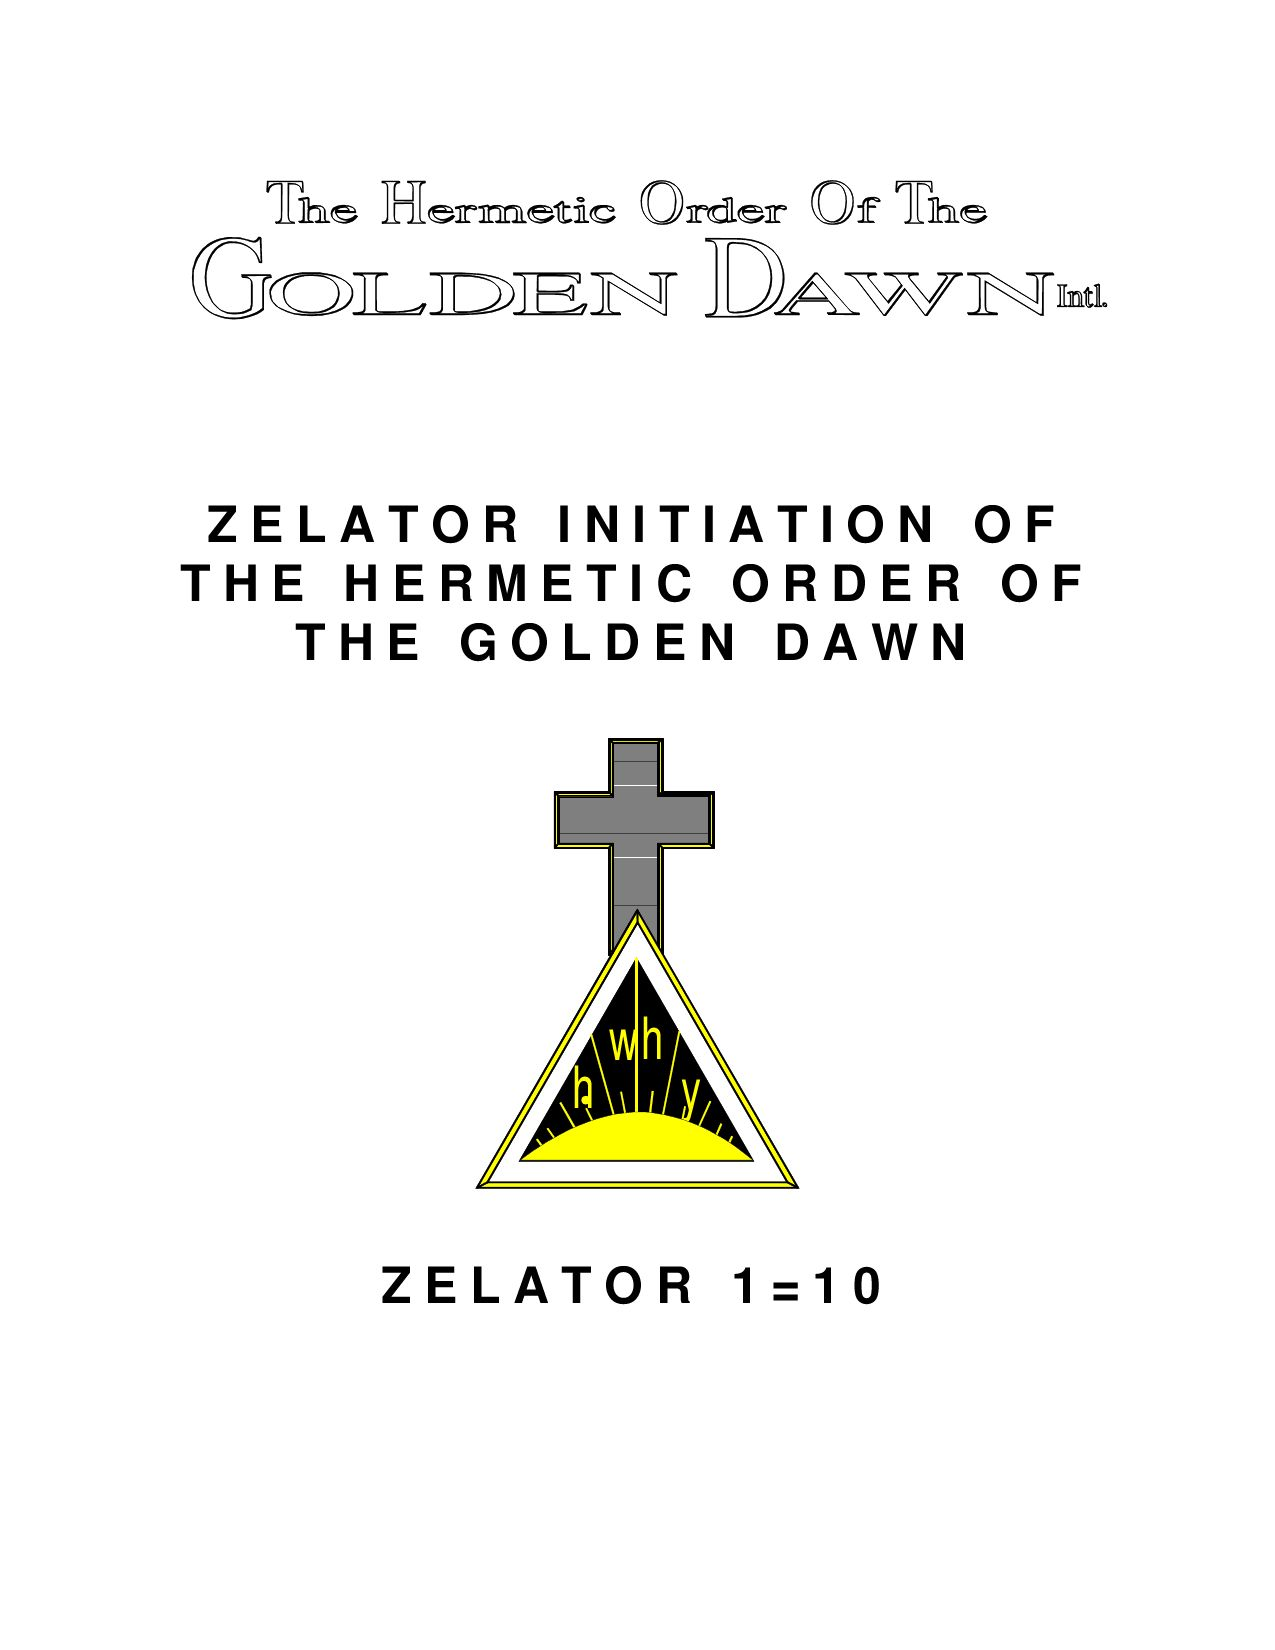 Zelator Initiation Of The Hermetic Order Of The By Marco Tomaselli